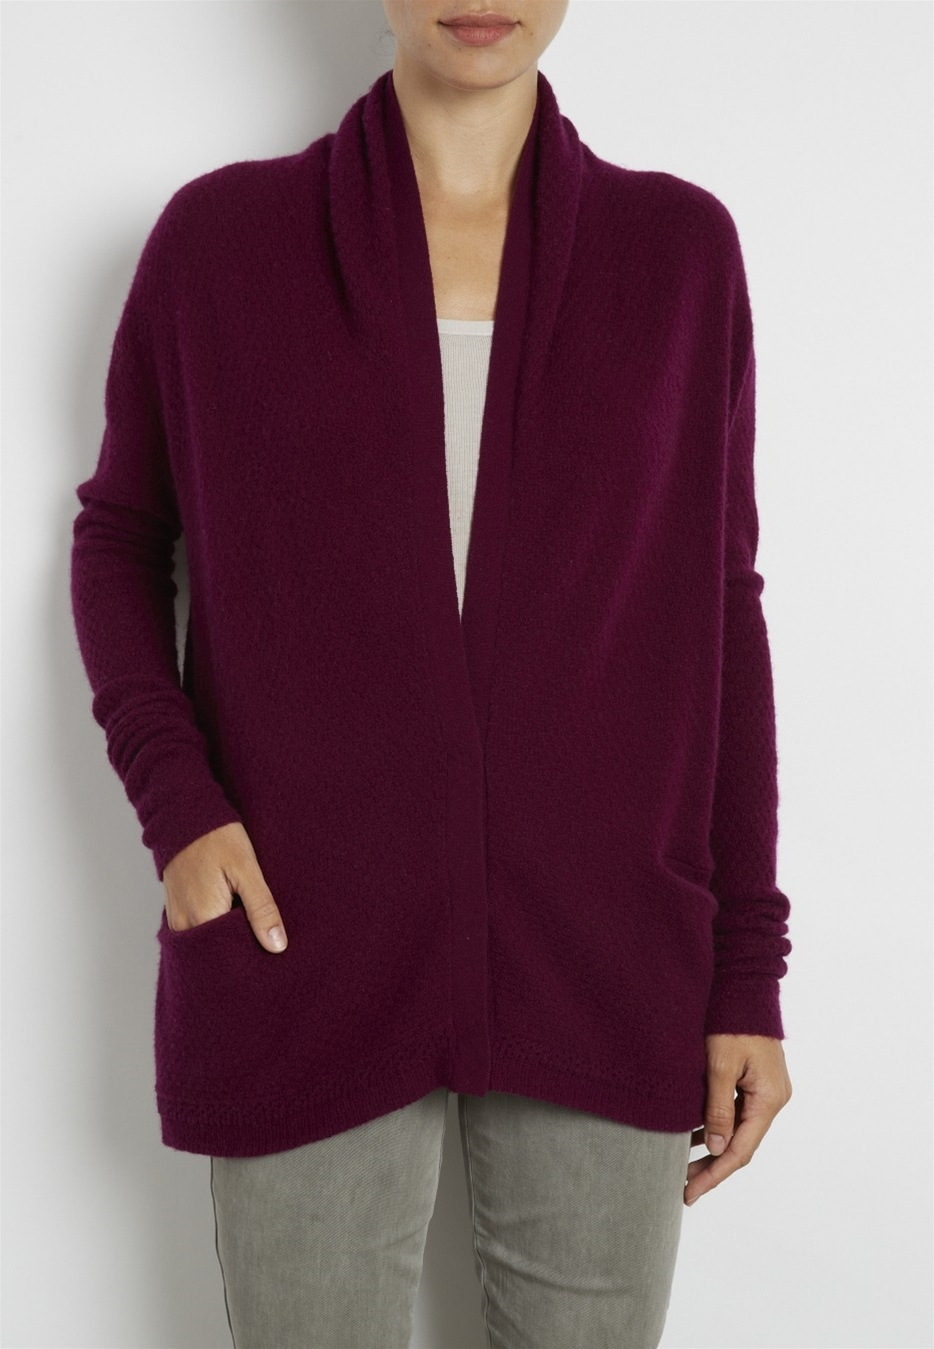 Whisper weight crepe cardigan